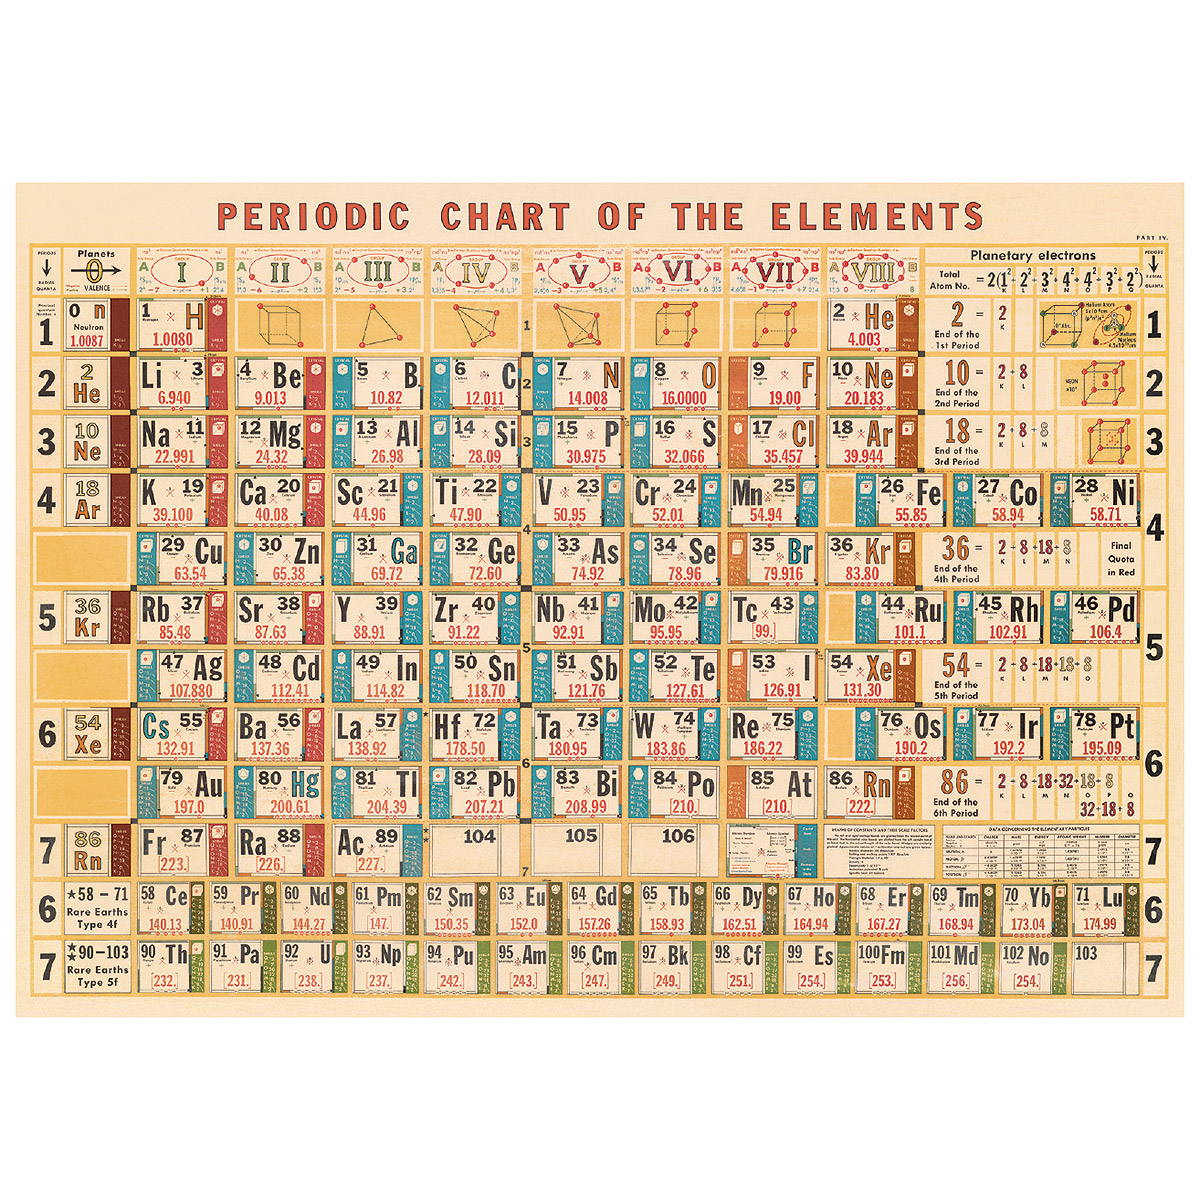 Periodic table of elements chart vintage style poster ephemera periodic table of elements chart vintage style poster ephemera urtaz Image collections